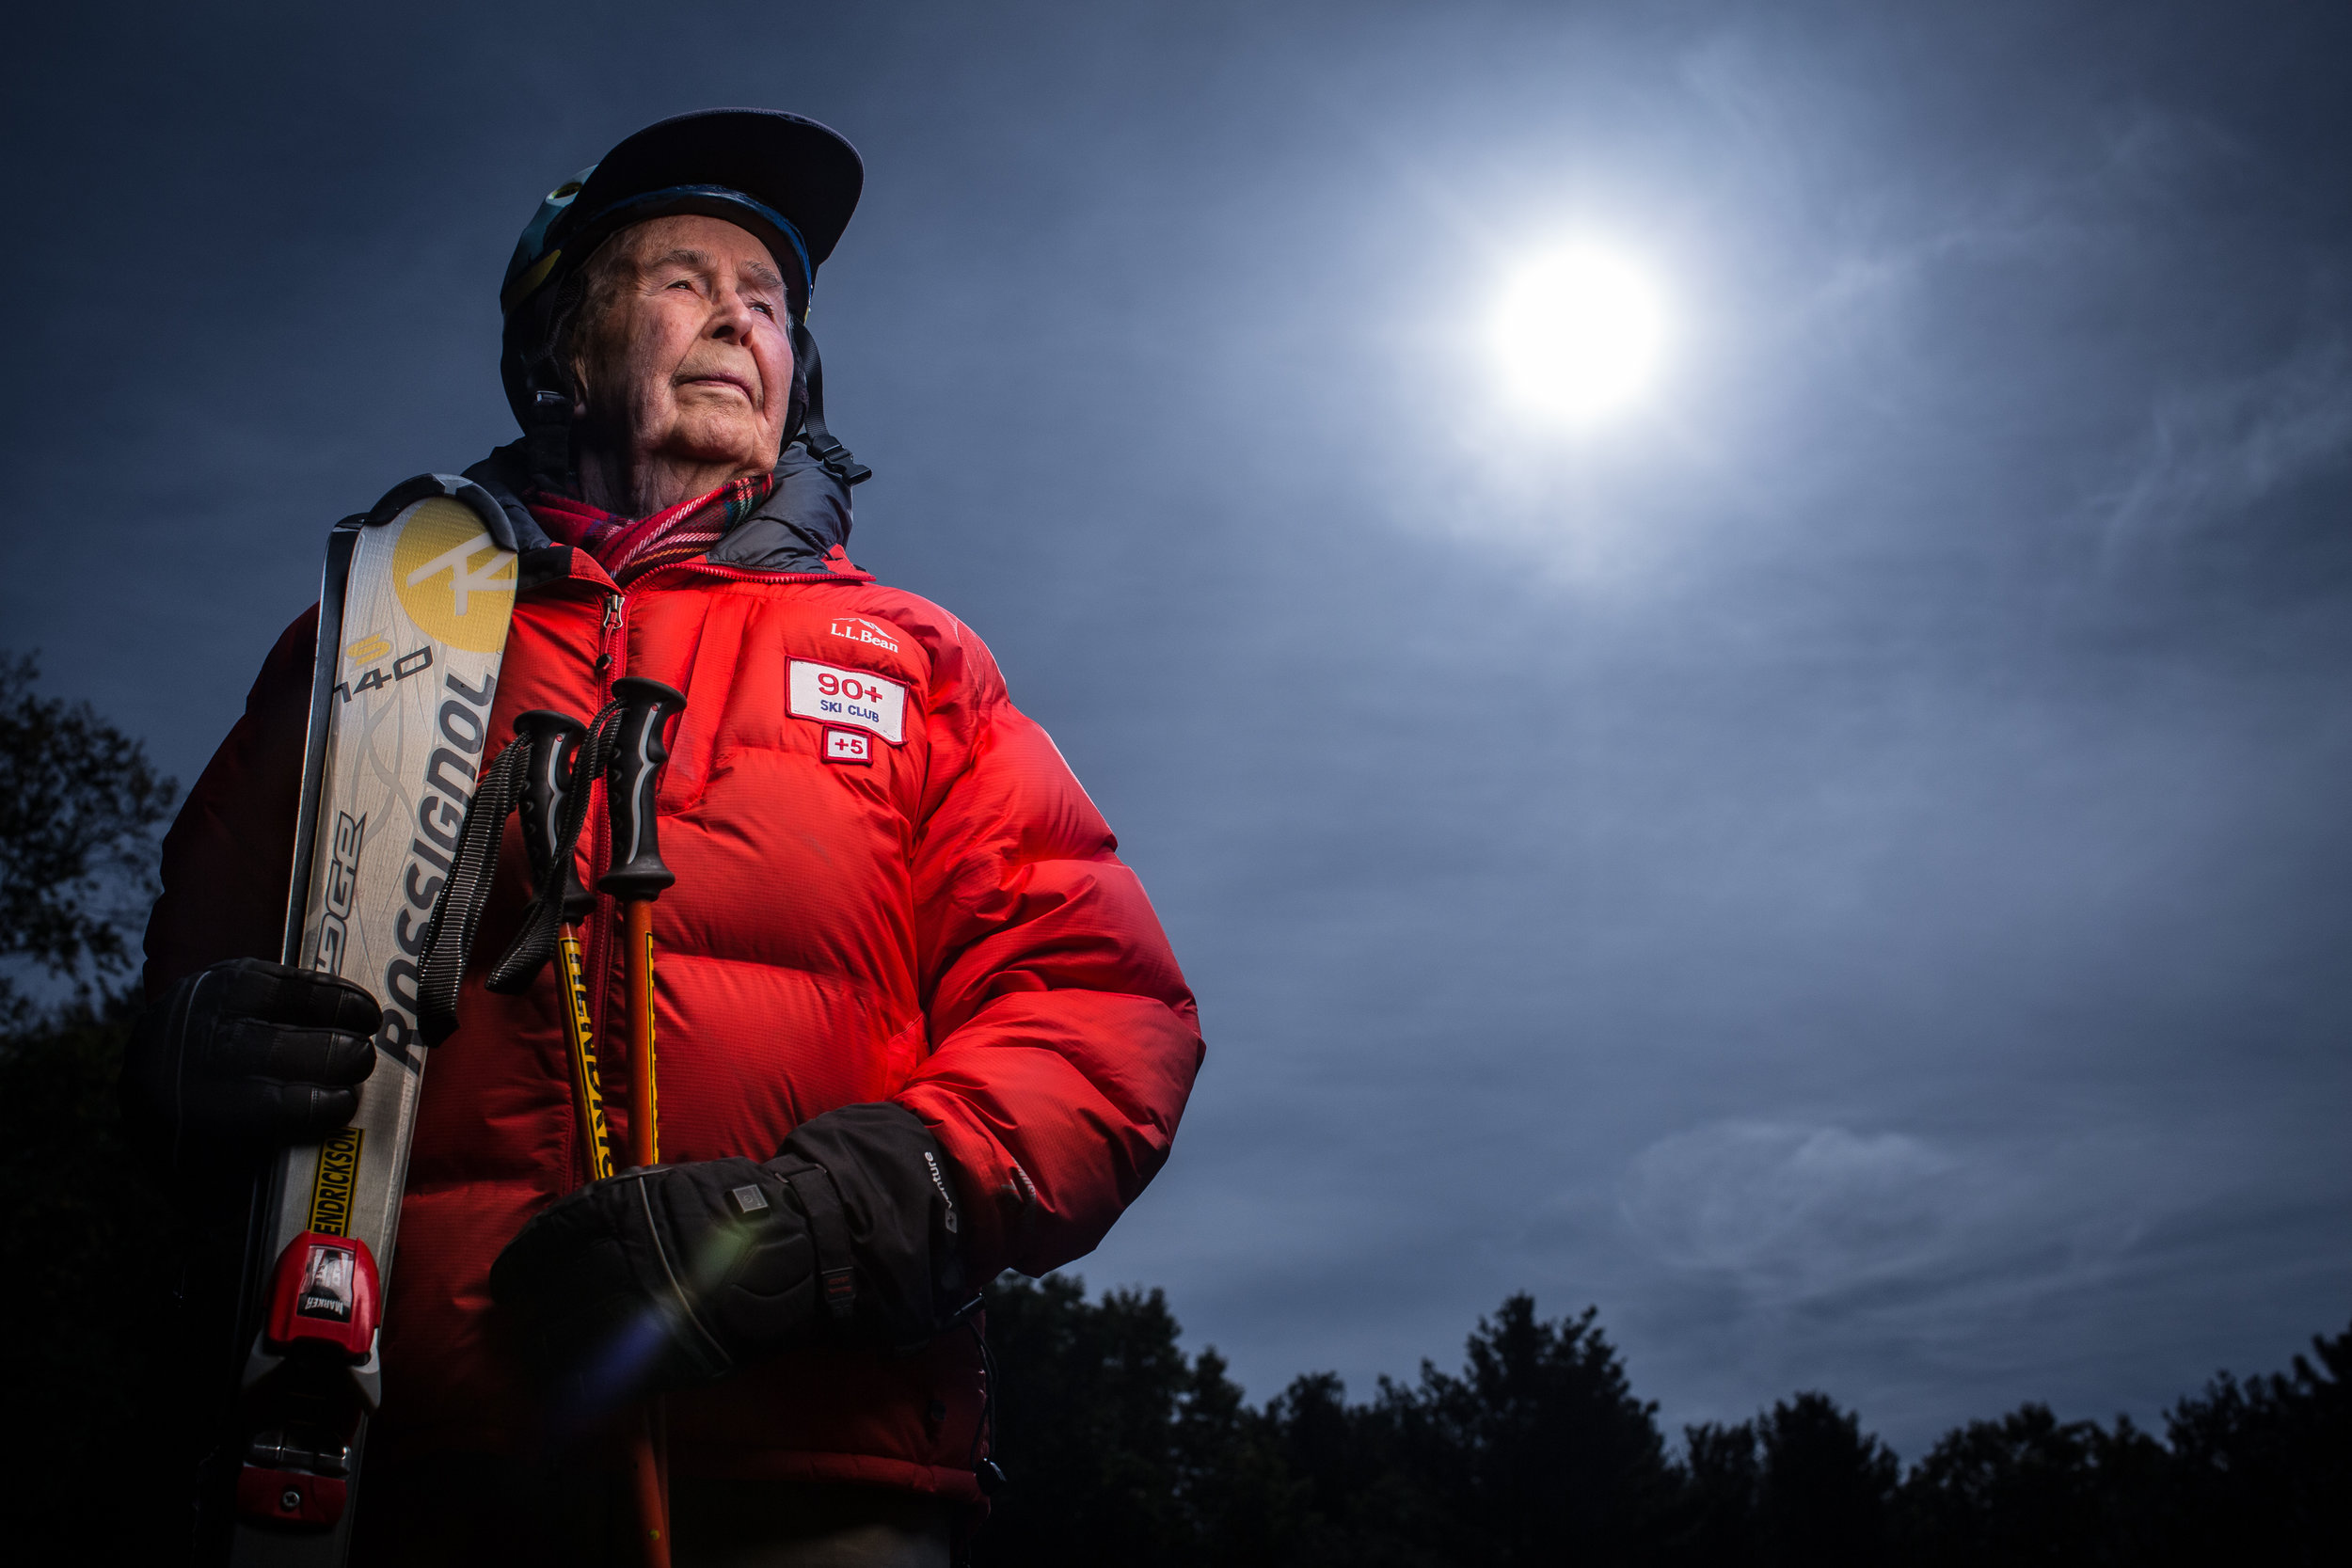 "Ed Hendrickson, 98, of Brewer, Maine, still plans to do some downhill skiing once the snow starts to fly; in 2003 Hendrickson was the recipient of Sugarloaf's Paul Schipper's Iron Man Award. While he's been an avid skier most of his life and the dean of students at Northern Maine Vocational Technical Institute for 17 years, he was also a naval dive-bomber in WWII. Ed flew (and on a couple occasions) had to crash-land planes he was flying. In combat Hendrickson flew SB2C Helldivers. Over the span of just a few days, he shot down one enemy plane only to be hit by enemy fire a couple days later, losing his landing gear on one side, and crash-landing on an aircraft carrier--just the 14th aircraft carrier ever built, according to Hendrickson. ""After they took the gun camera off the plane, they just pushed it overboard,"" he said. ""That's just how they did things."" On a previous occasion he wasn't able to land on the carrier and ended up careening off into a lake, where he narrowly escaped being dragged 130 feet to the bottom with his plane. That particular plane, a Douglass SBD Dauntless, was brought back to the surface in the 1990s and now can be seen on display at the National Museum of Naval Aviation in Pensacola, Florida."